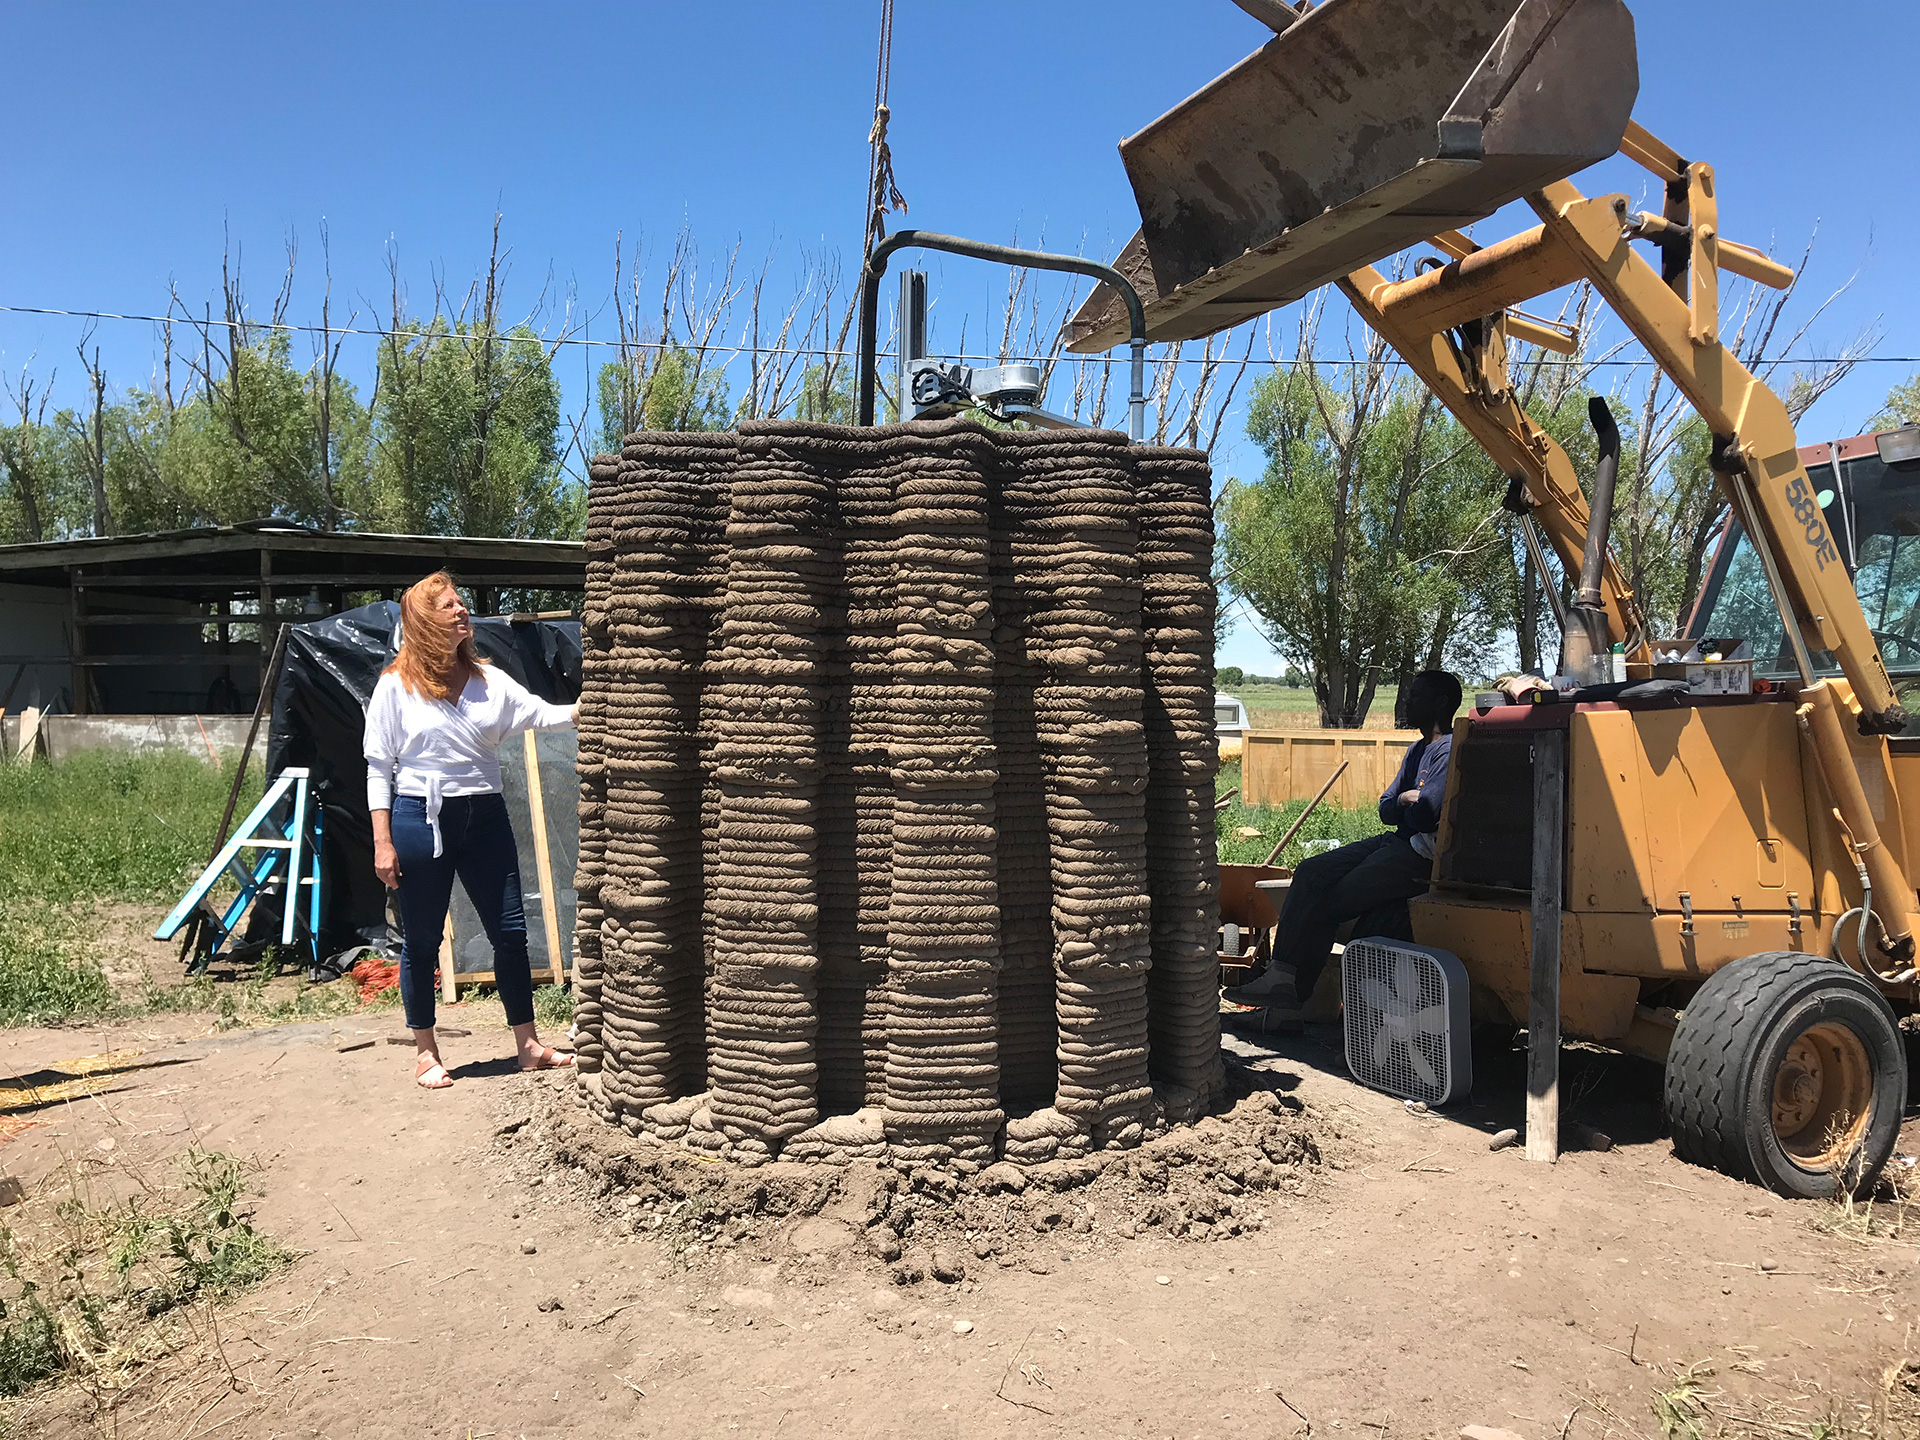 The making of 'Beacon' on site | Mud Frontiers | Emerging Objects | STIRworld